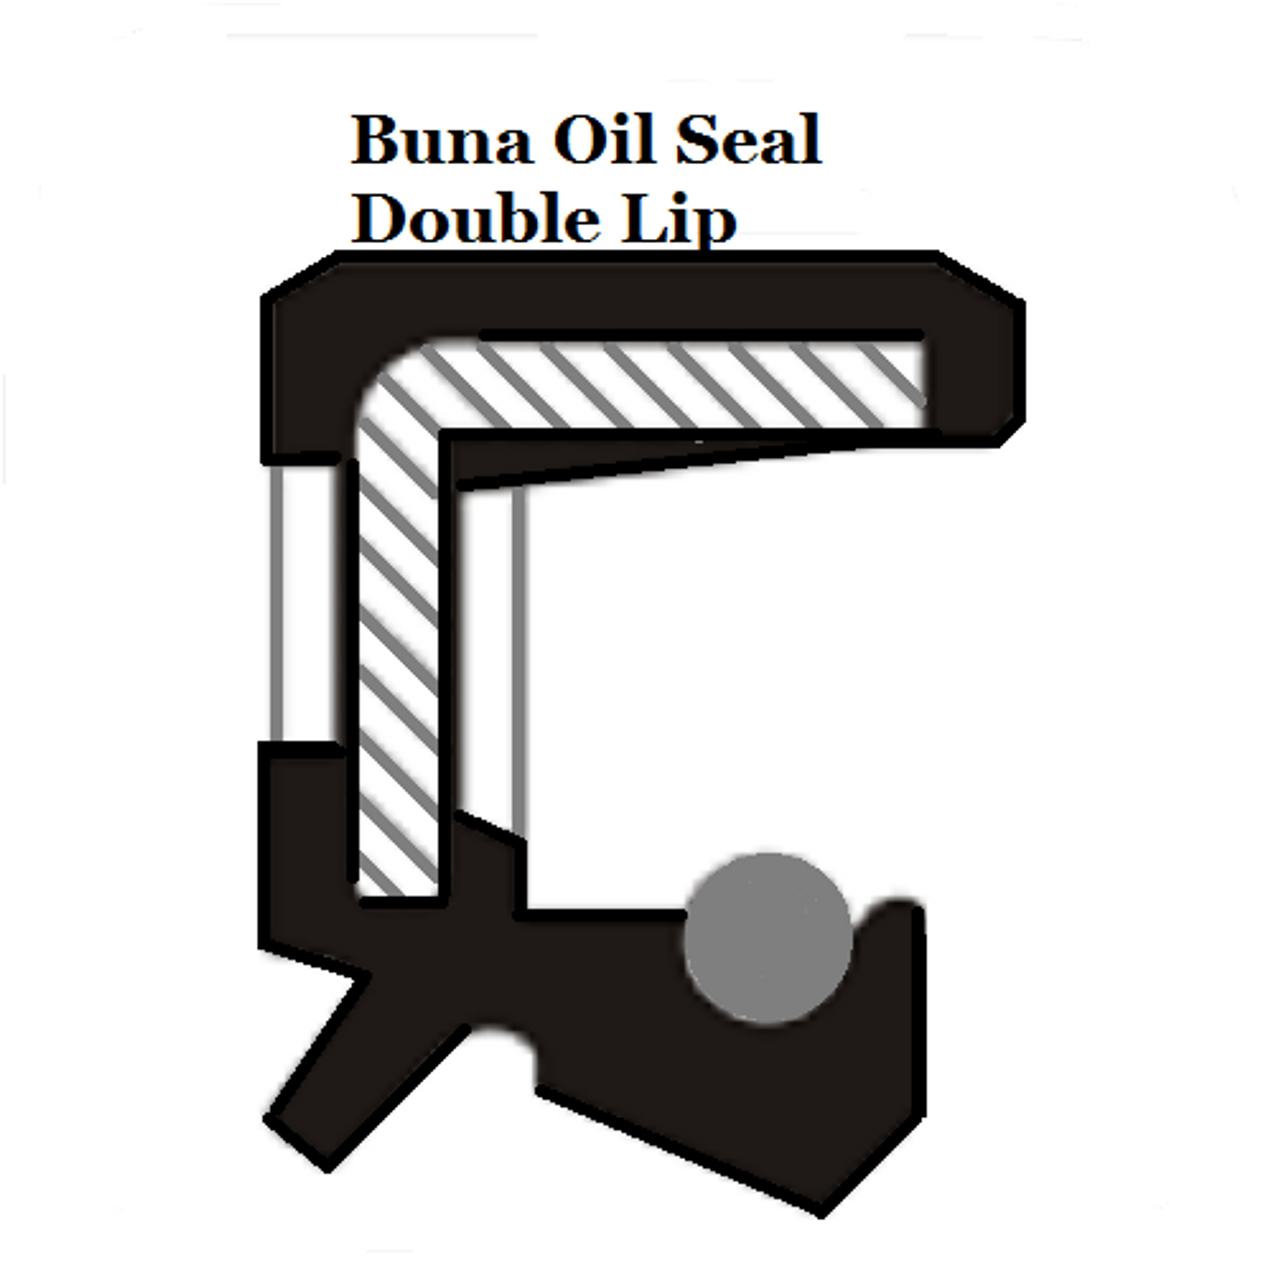 Metric Oil Shaft Seal 15 x 25 x 7mm Double Lip  Price for 1 pc